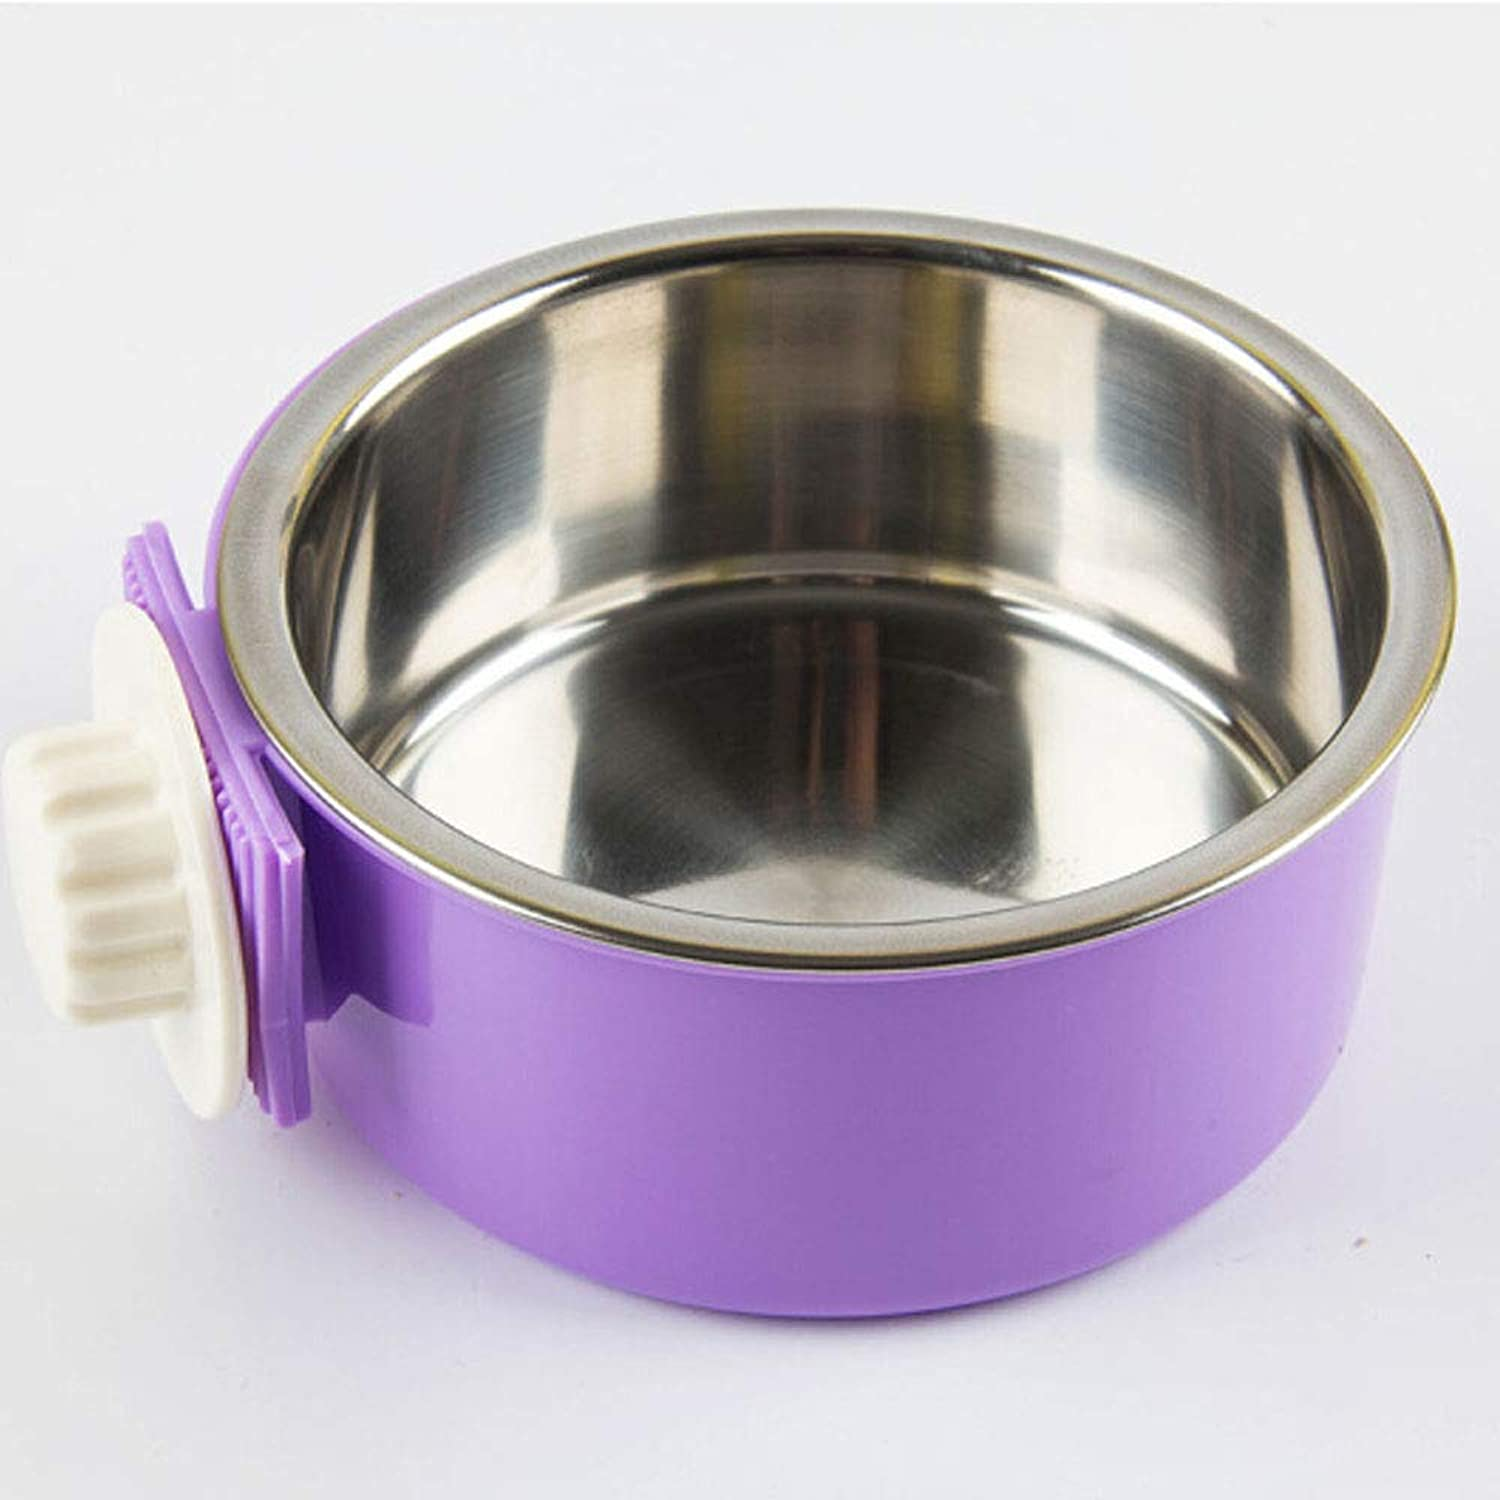 Dog Cage Fixed Stainless Steel Hanging Bowl, Pet Single Bowl, Medium and Large Dog Supplies, S Code · Bowl Height  2.2 Inches  Purple (color   Purple, Size   5  5  2.2)